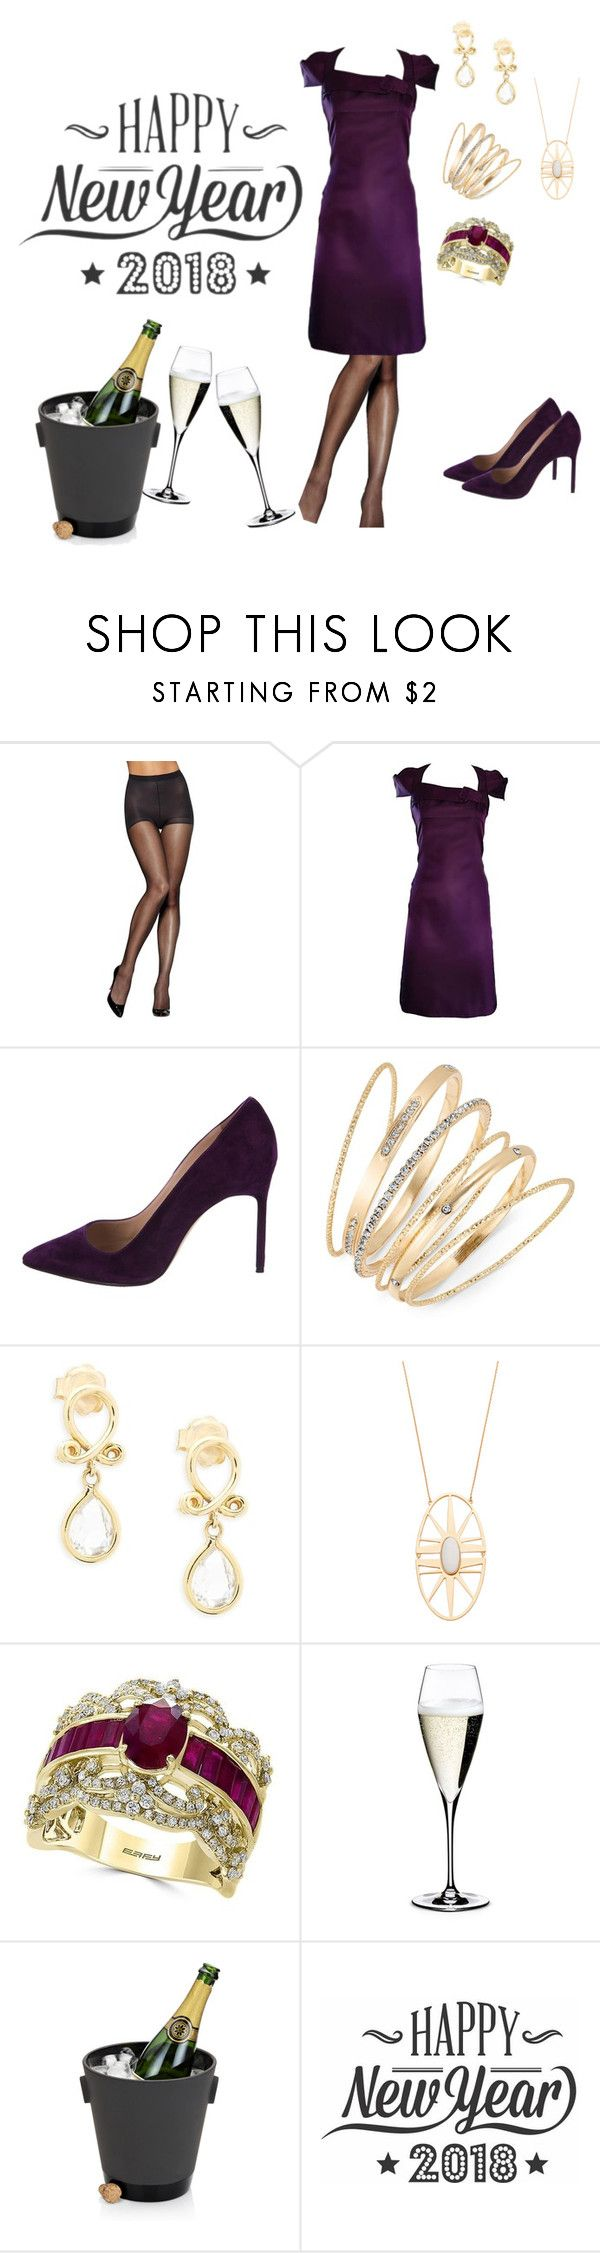 """""""Get ready with me Happy New Year outfit 🎆🎉"""" by kellykalymnoskd on Polyvore featuring Hanes, 6267, Manolo Blahnik, Thalia Sodi, Temple St. Clair, Trina Turk, Effy Jewelry, Riedel and Cricut"""